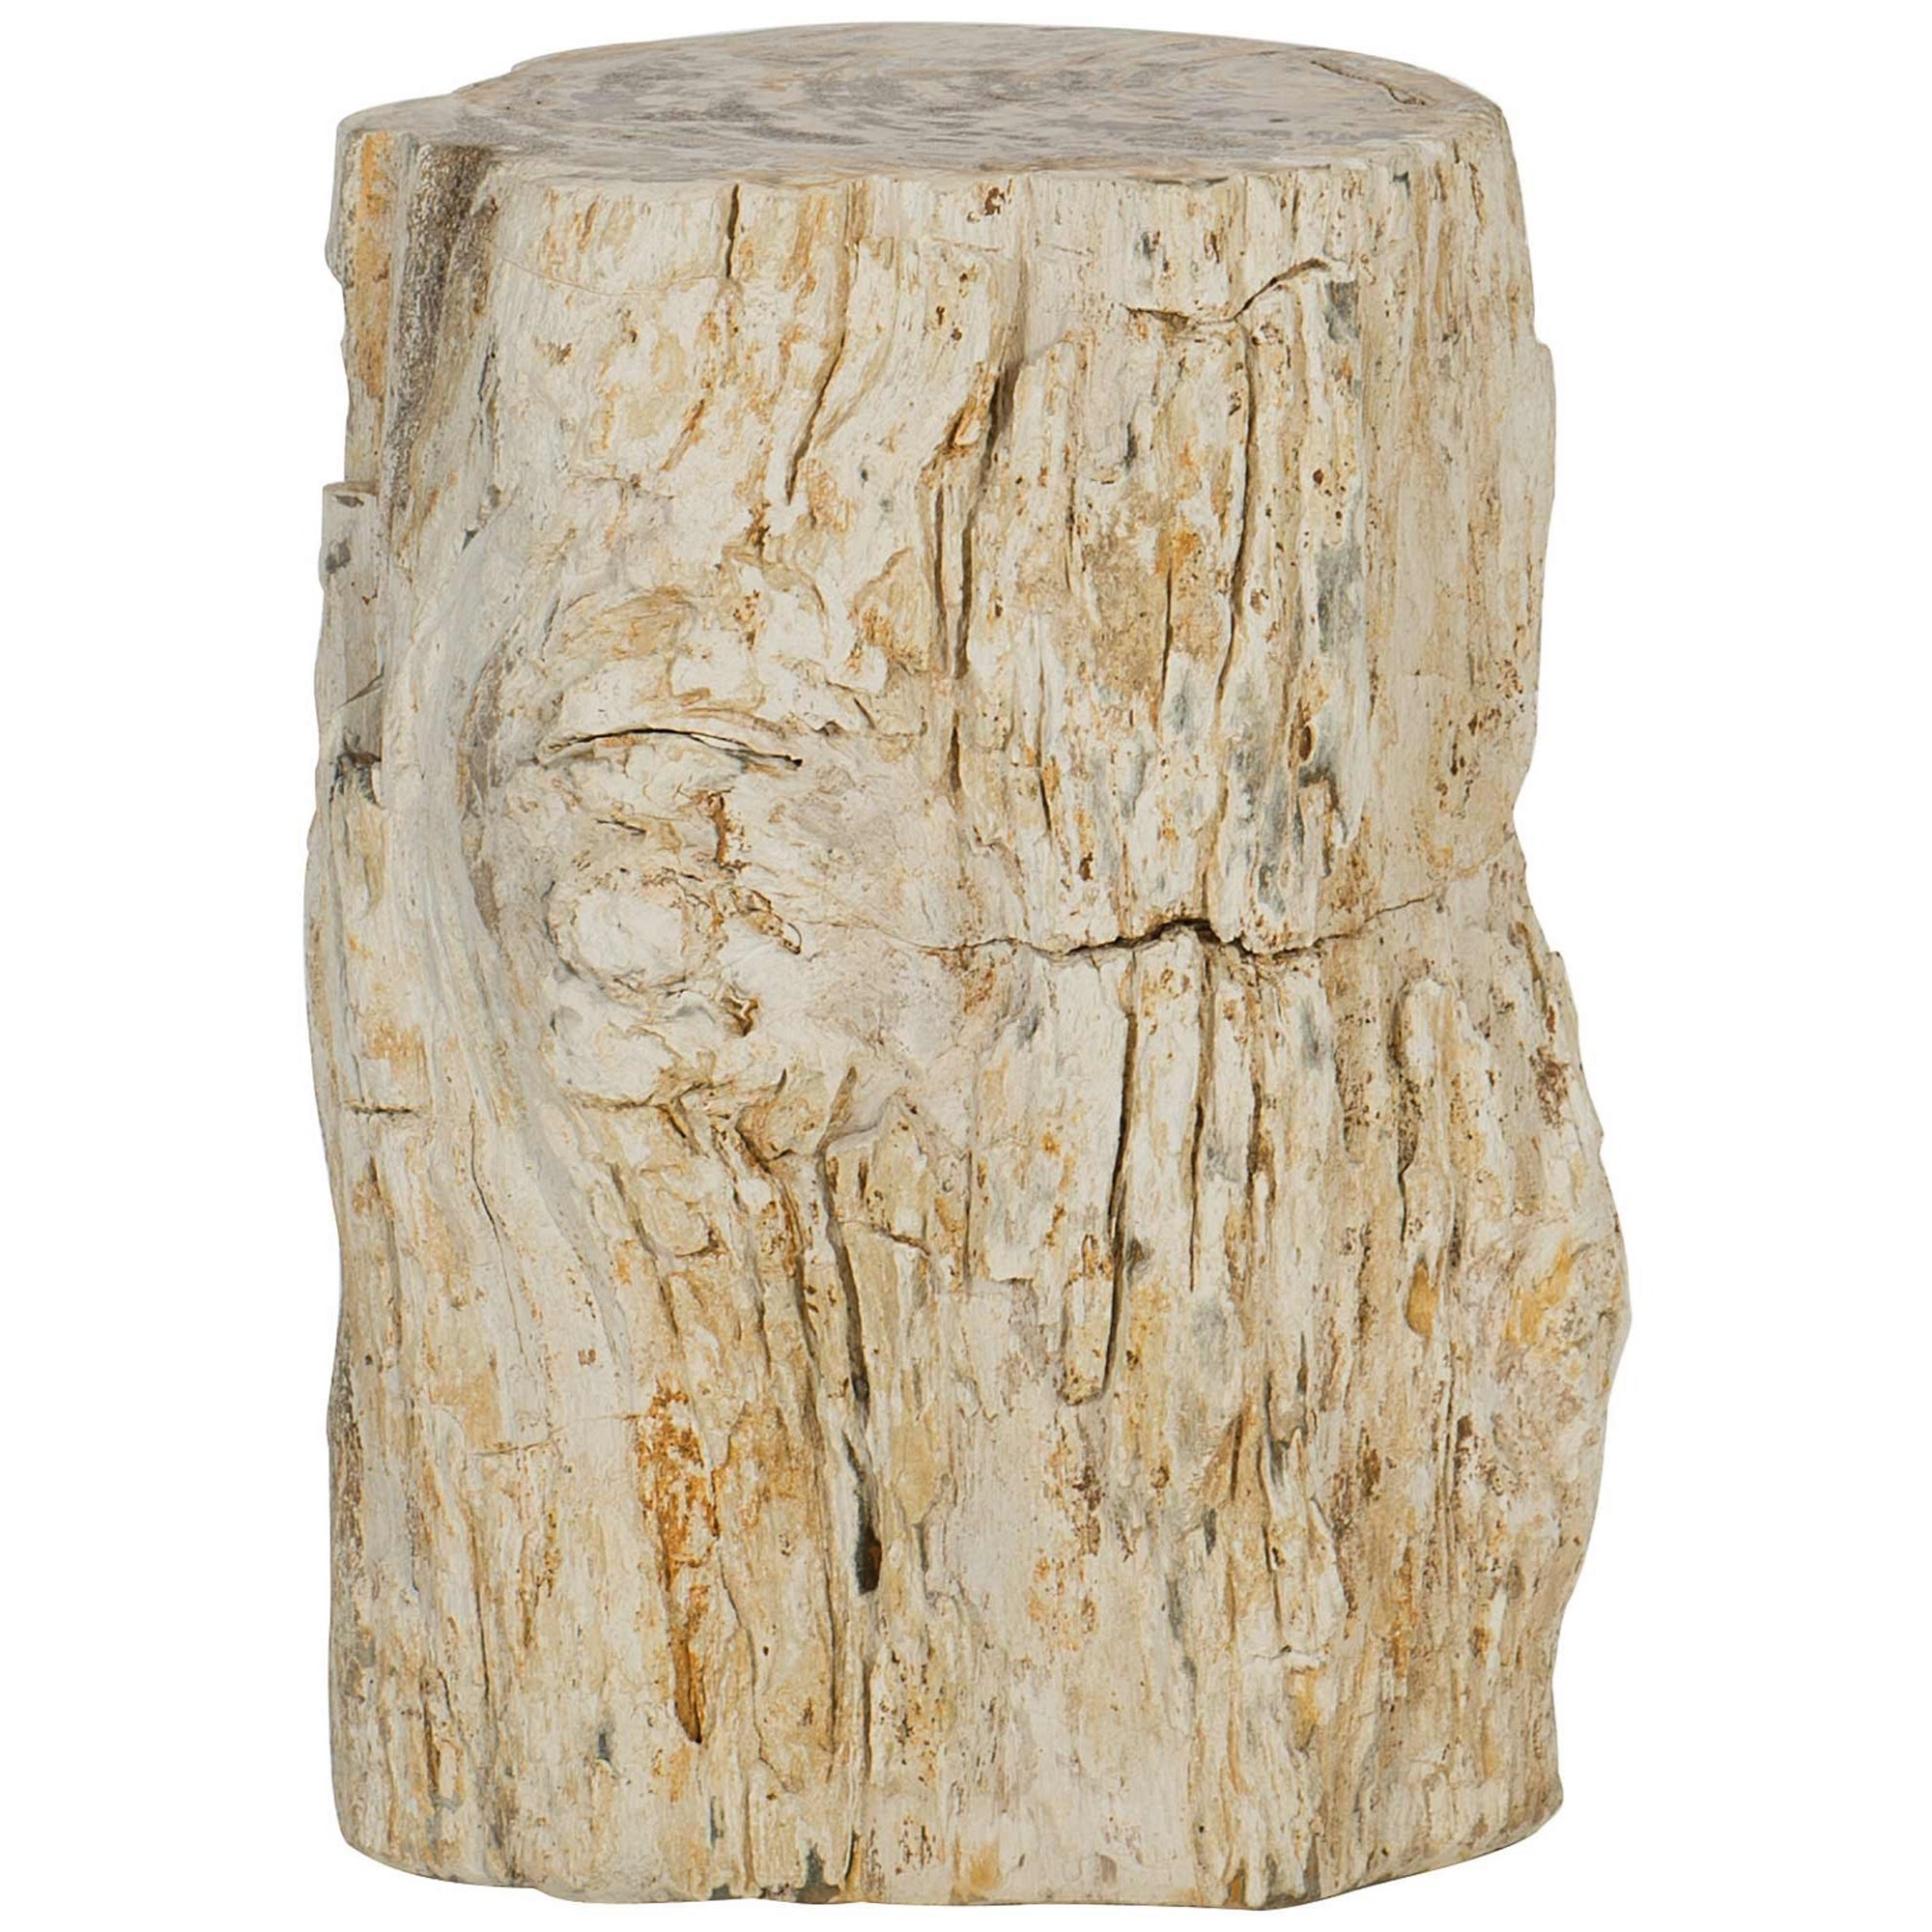 Interiors - Accents Petrified Wood Drink Table by Bernhardt at Baer's Furniture